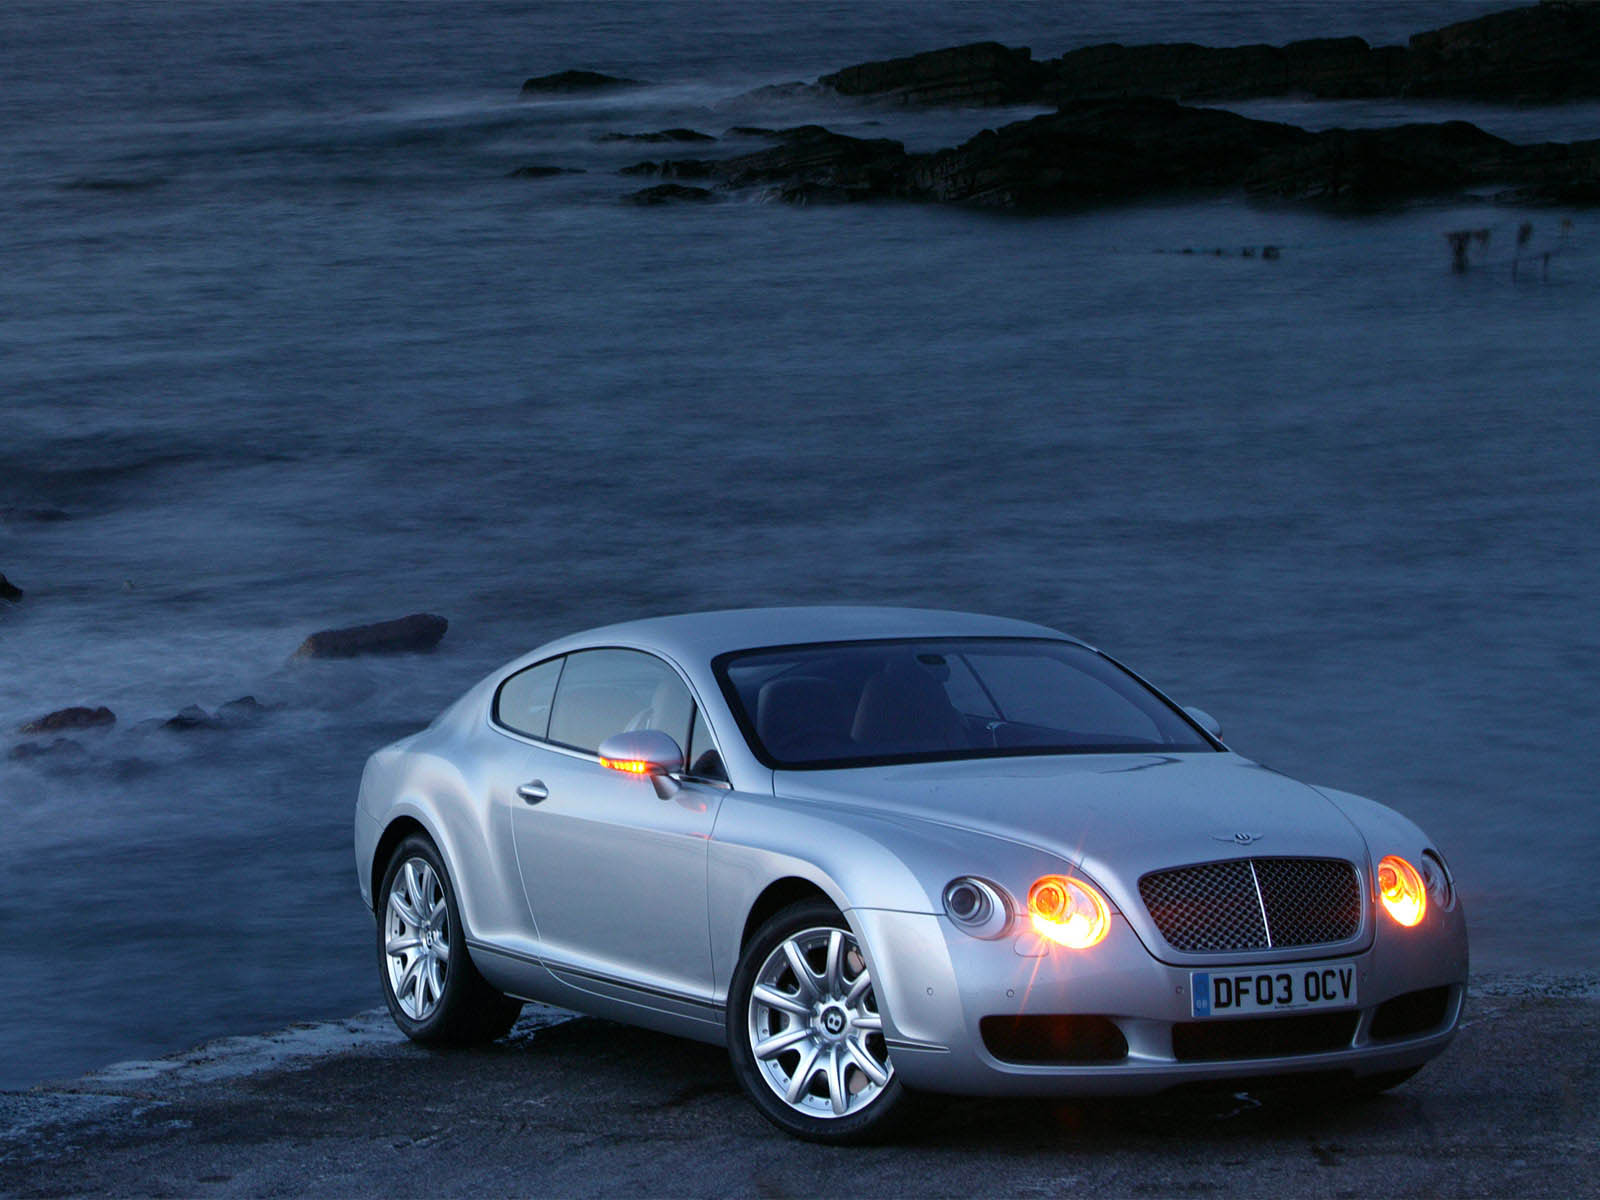 Exterieur_Bentley-Continental-GT_8